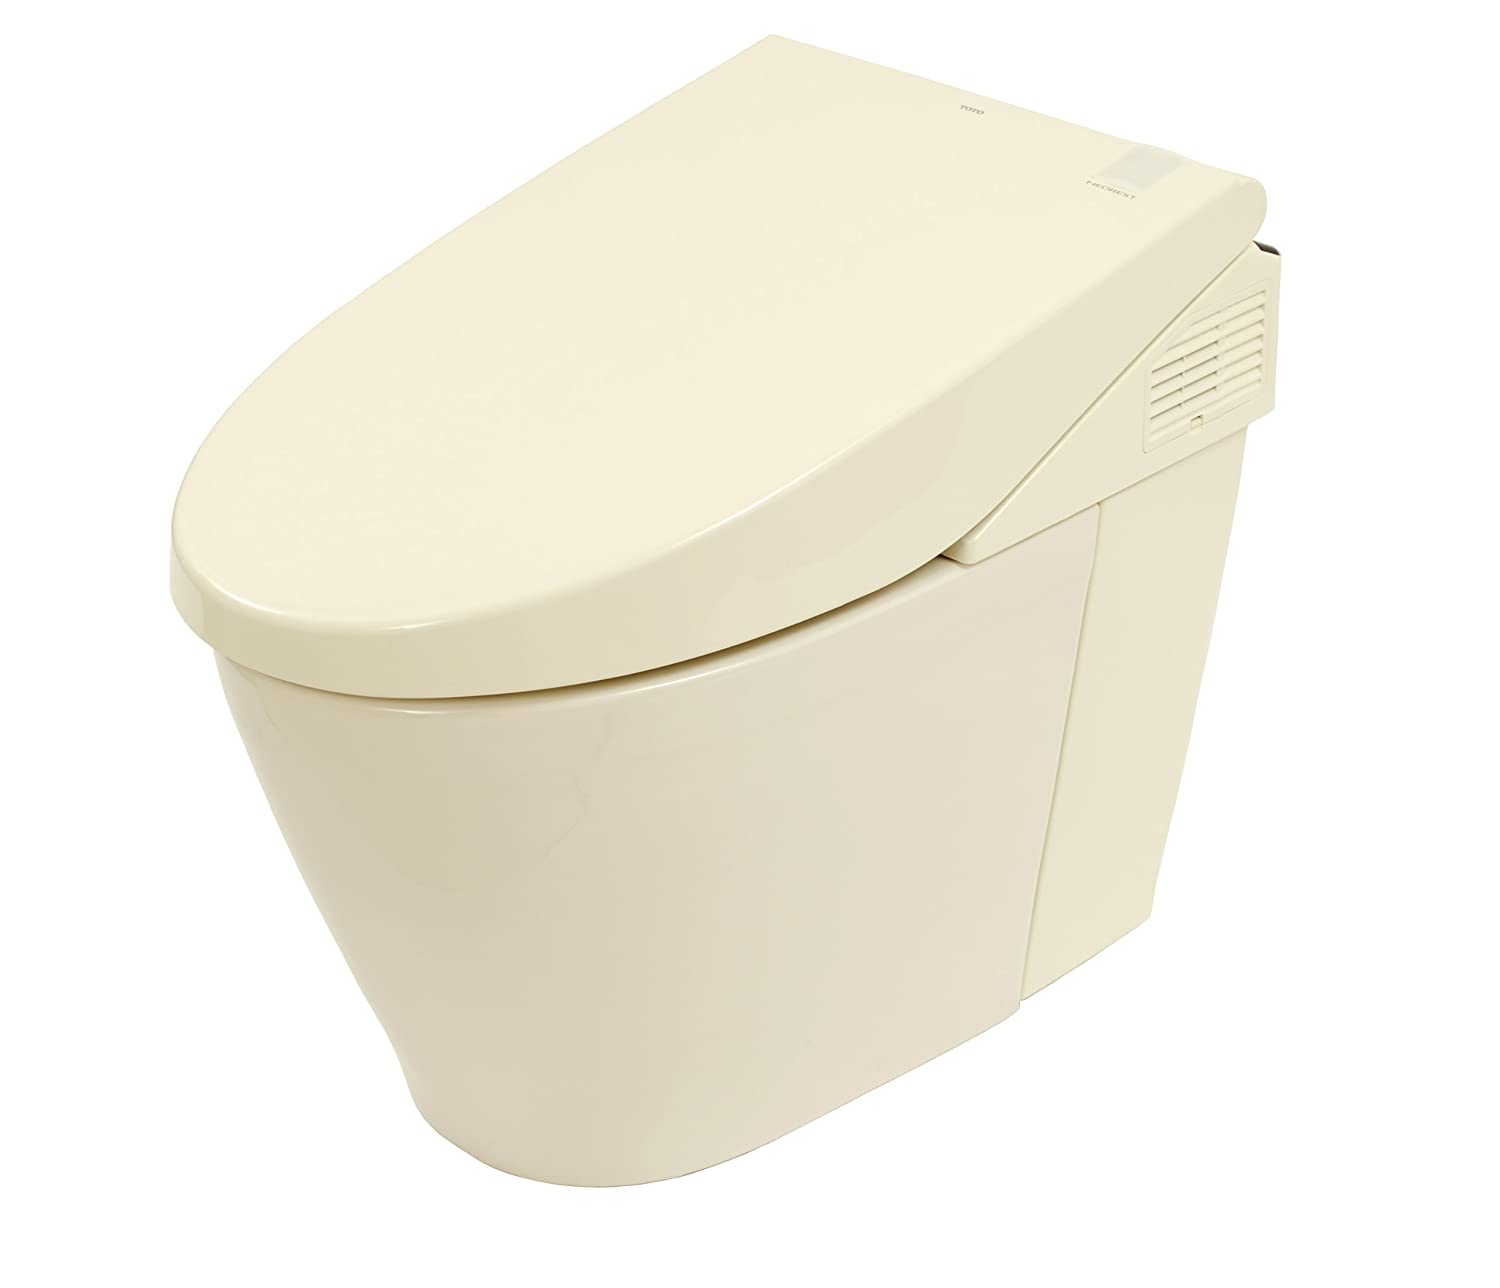 Best toilet on the market reviews - Toto Ms980cmg 01 Neorest 550 Dual Flush One Piece Toilet Cotton White Amazon Com